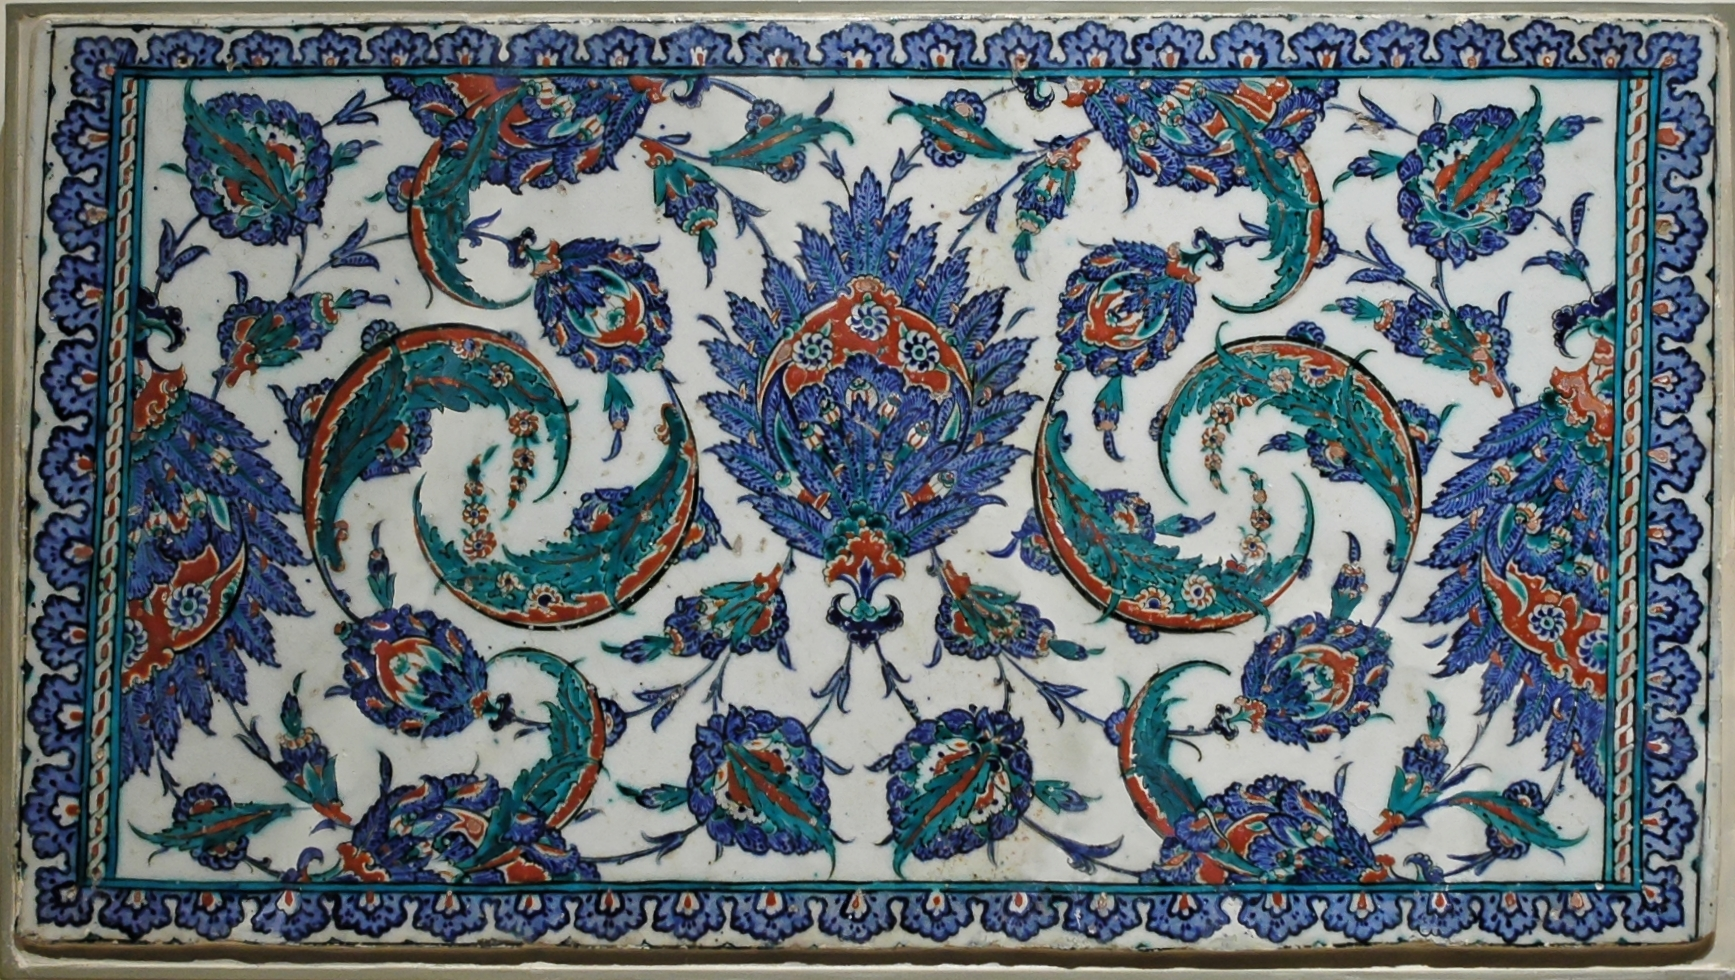 This Is One Of The Iznik Tile Decoration In Selimiye